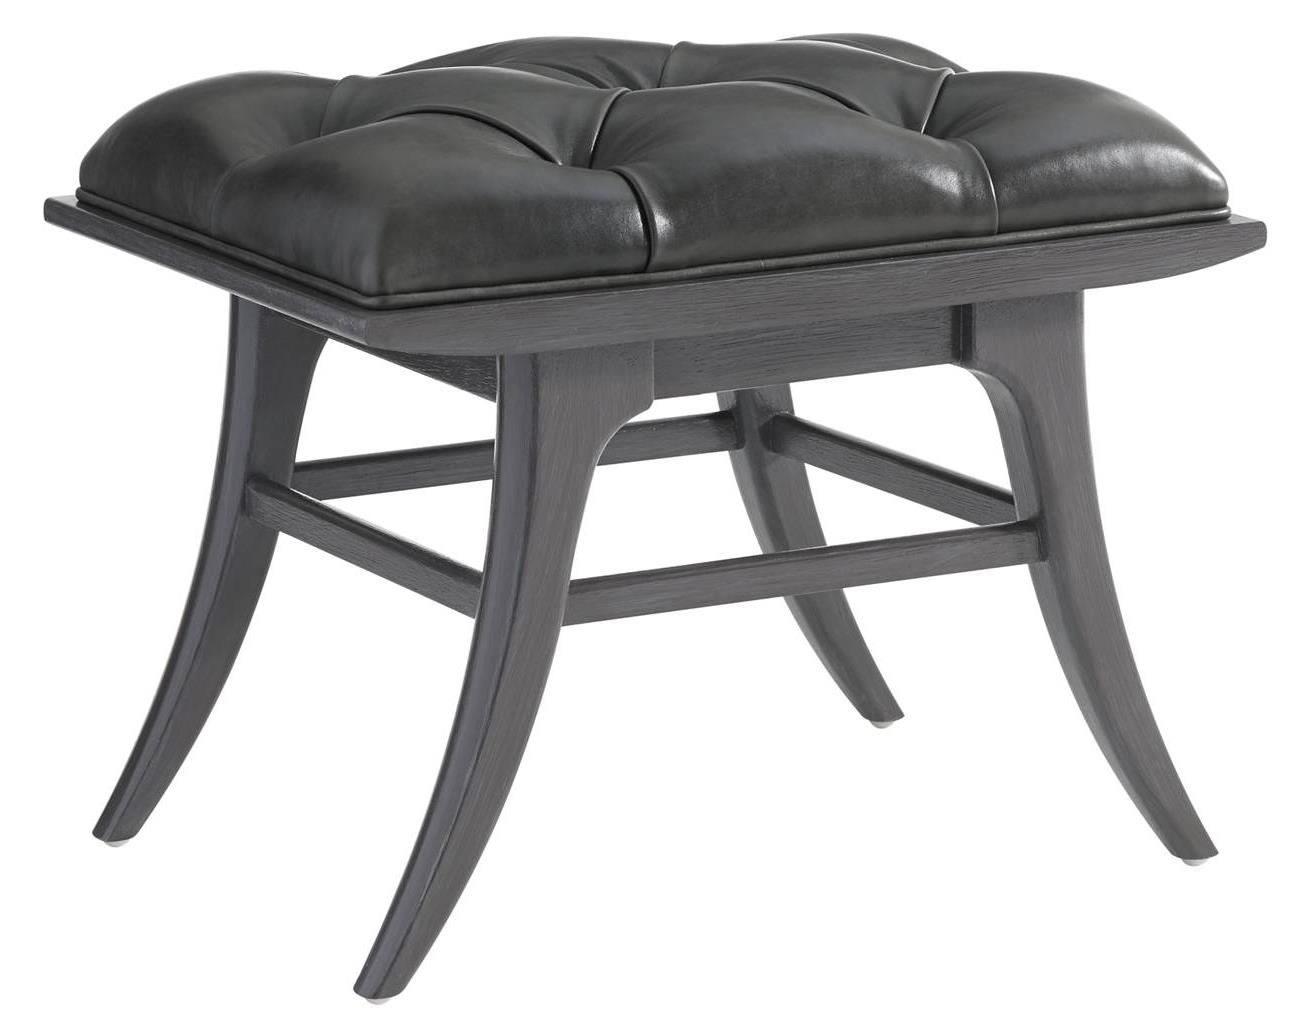 Stanley Furniture Crestaire Lena Ottoman - Item Number: 436-85-72